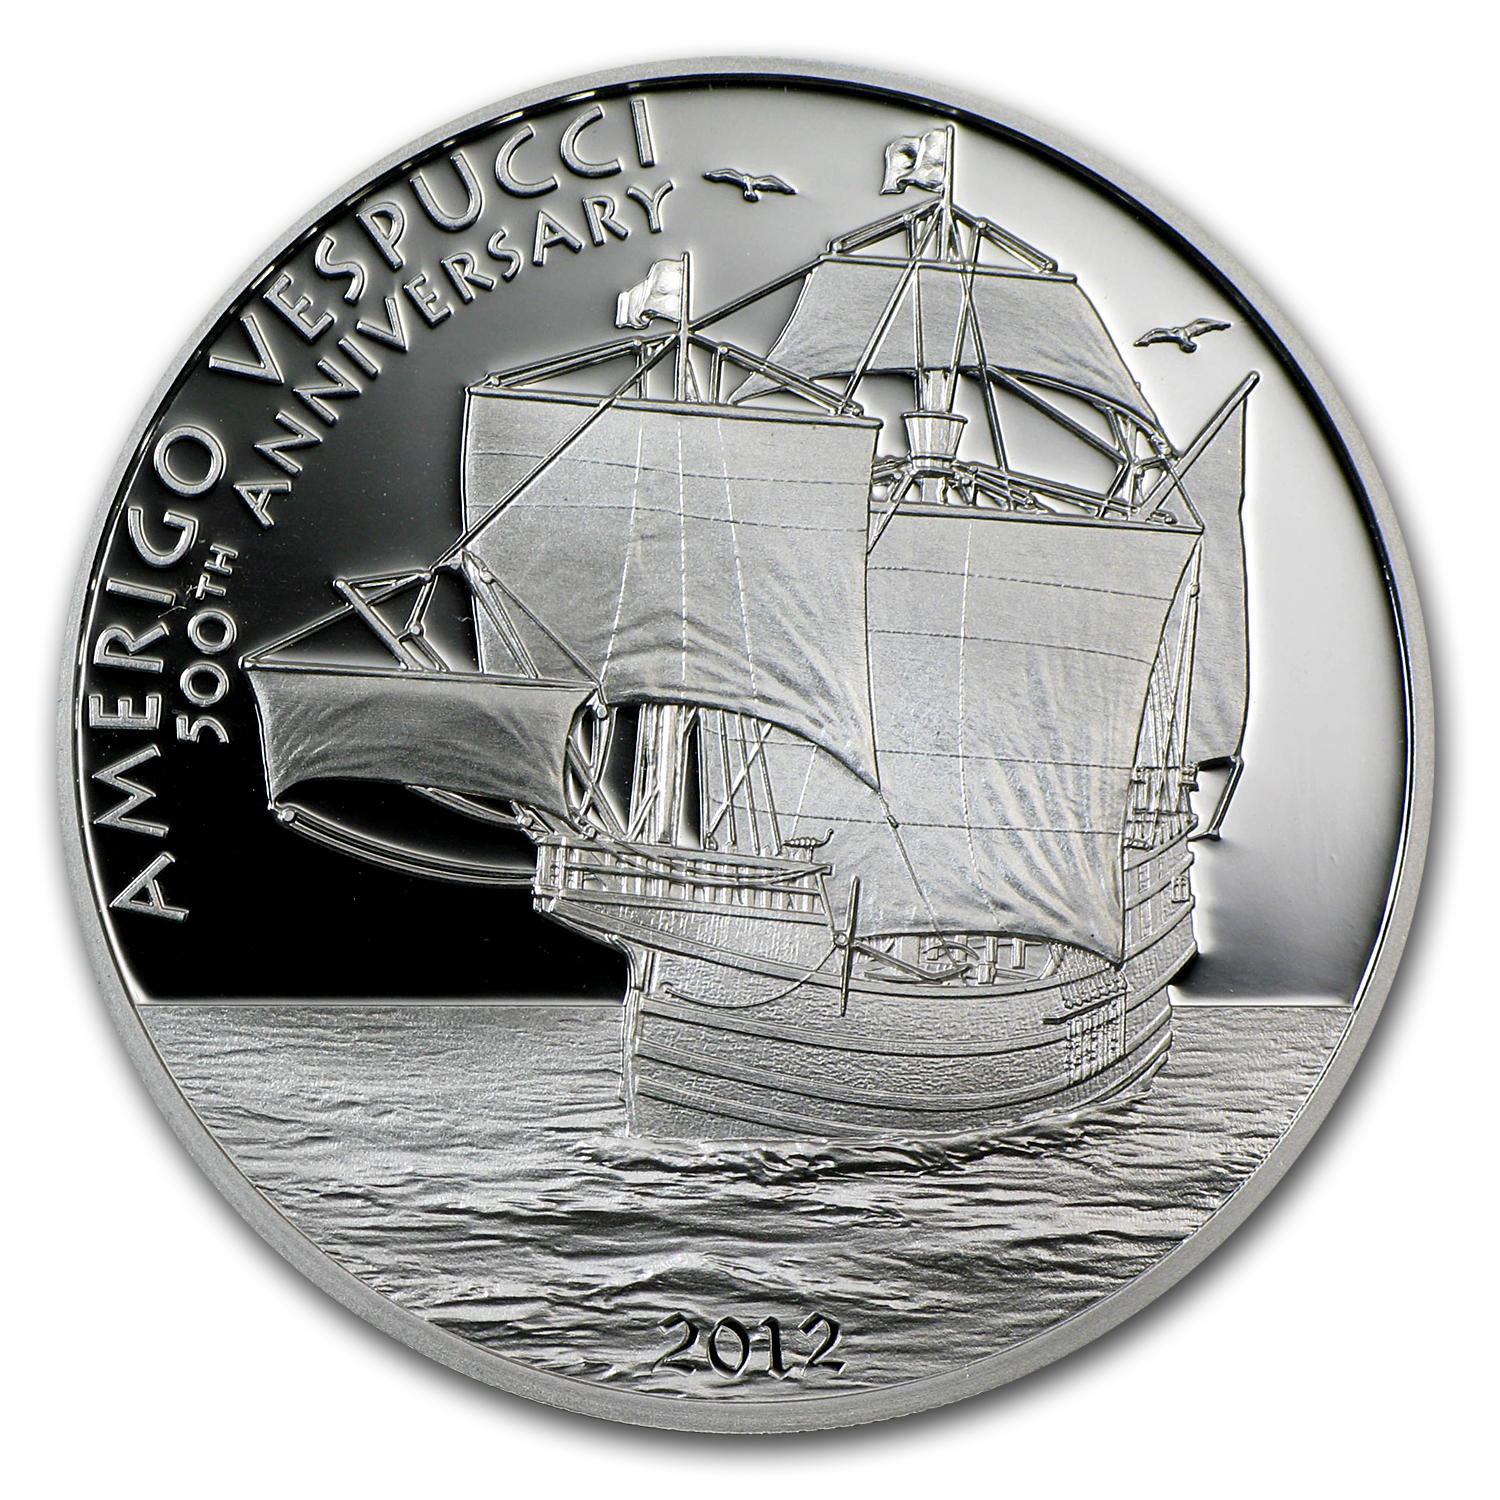 2012 Cook Islands Proof Silver $5 Amerigo Vespucci 500th Anniv